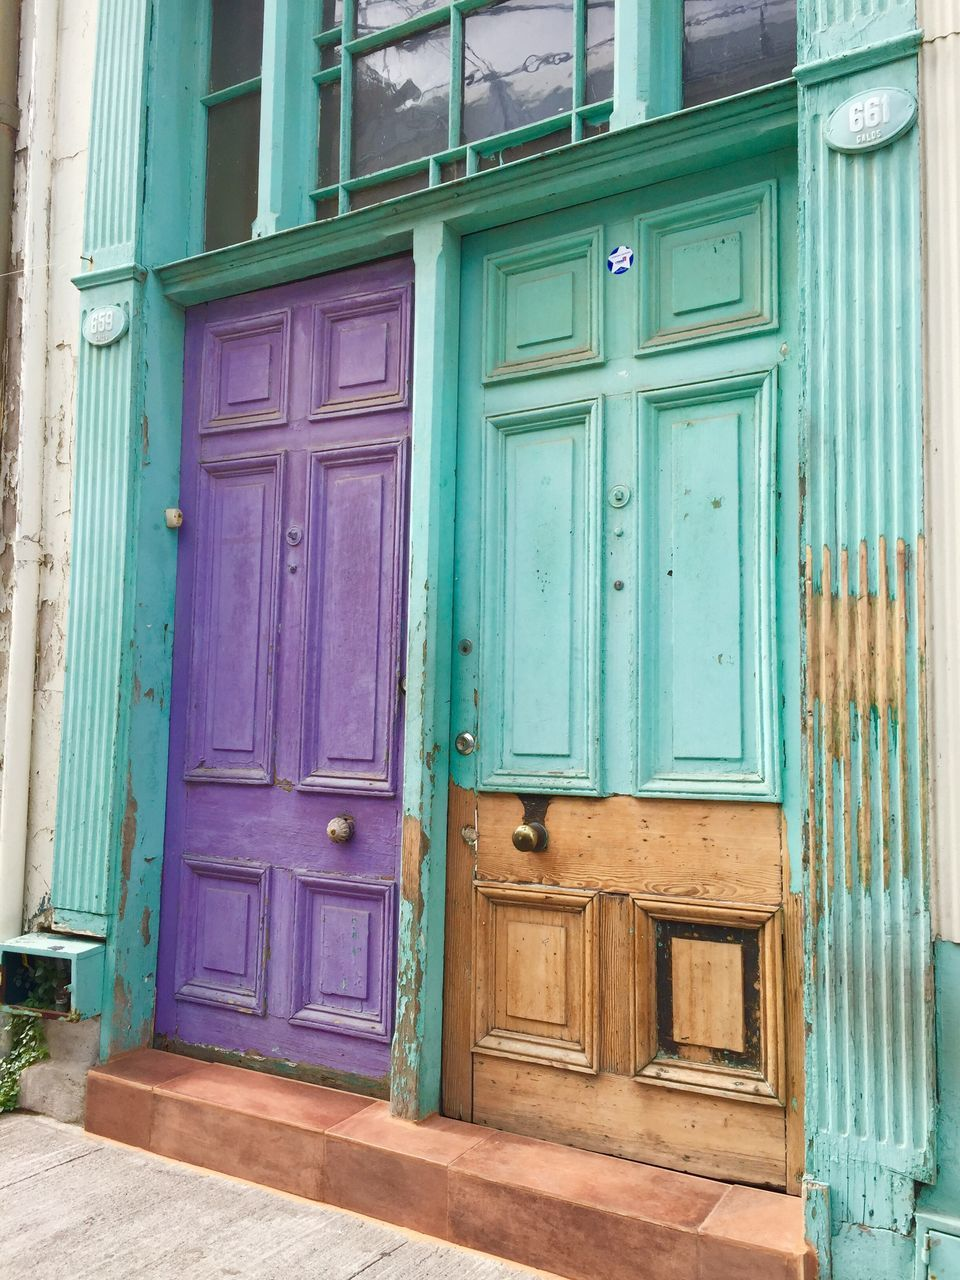 door, wood - material, closed, outdoors, architecture, no people, protection, built structure, day, old-fashioned, building exterior, close-up